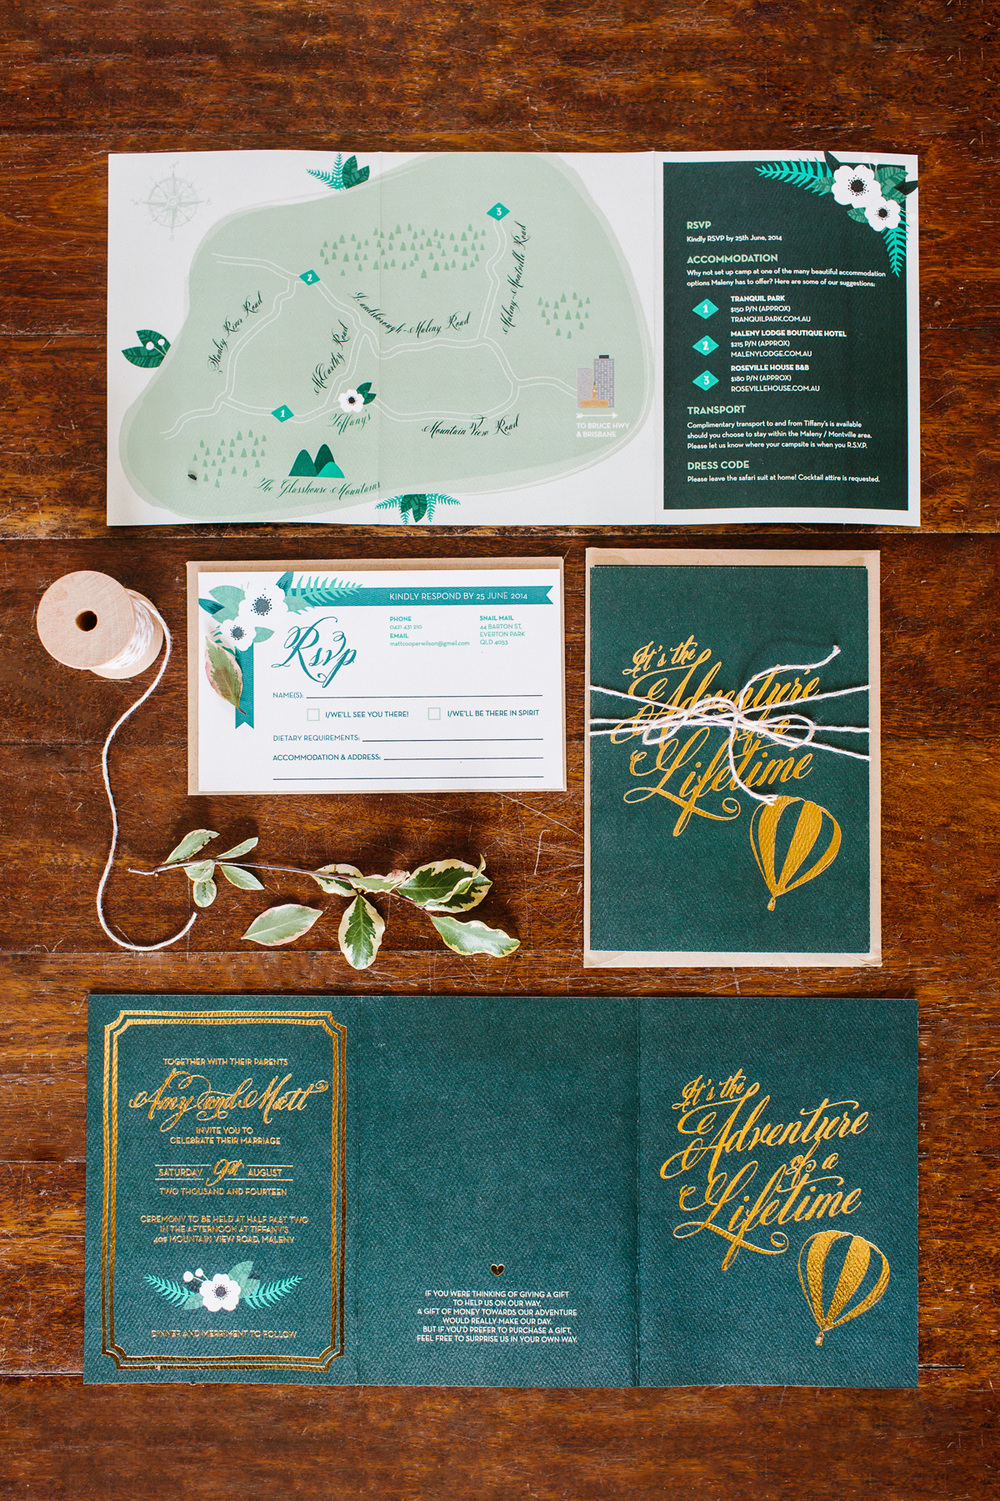 GoldFoil_Wedding_Invitations_Brisbane2.jpg